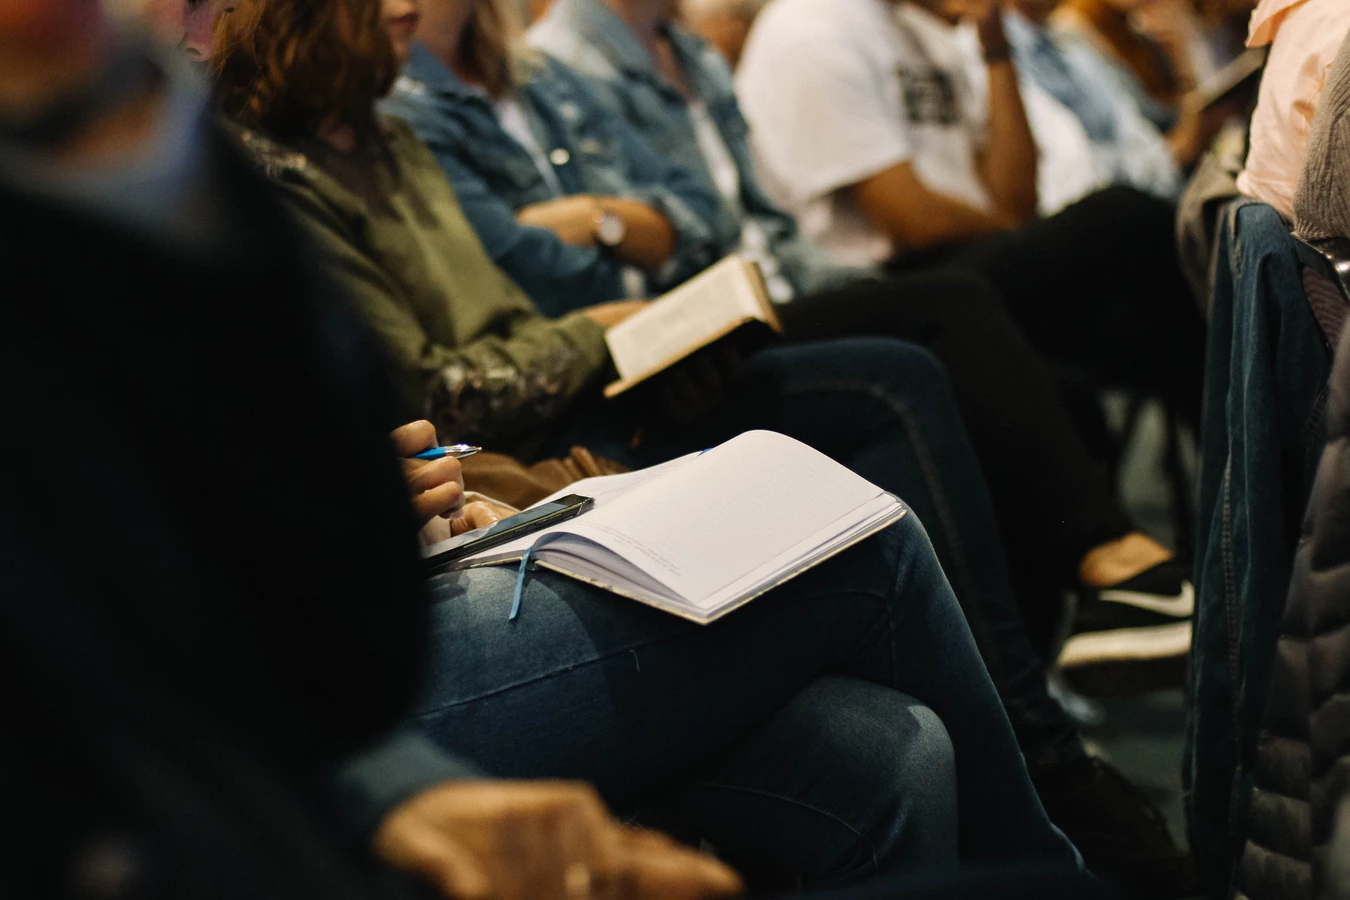 Communication failure: Team members take notes at a business lecture